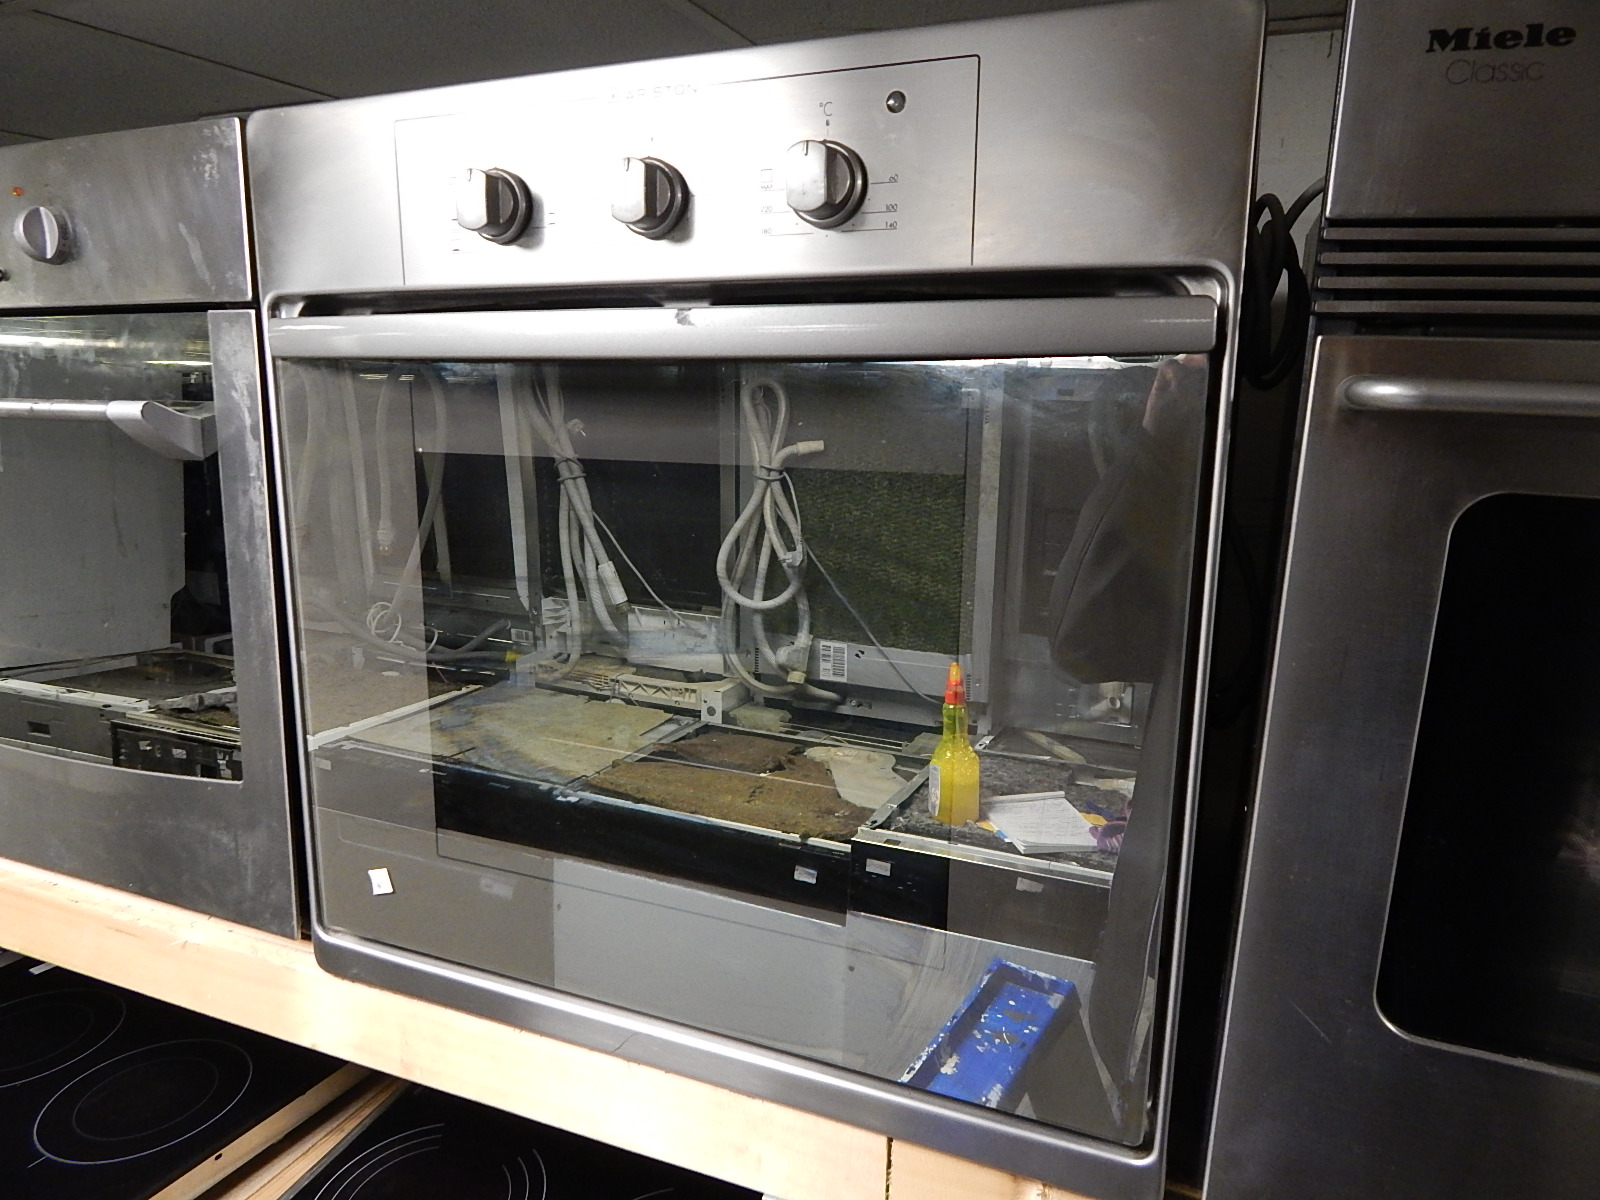 ARISTON INBOUW OVEN